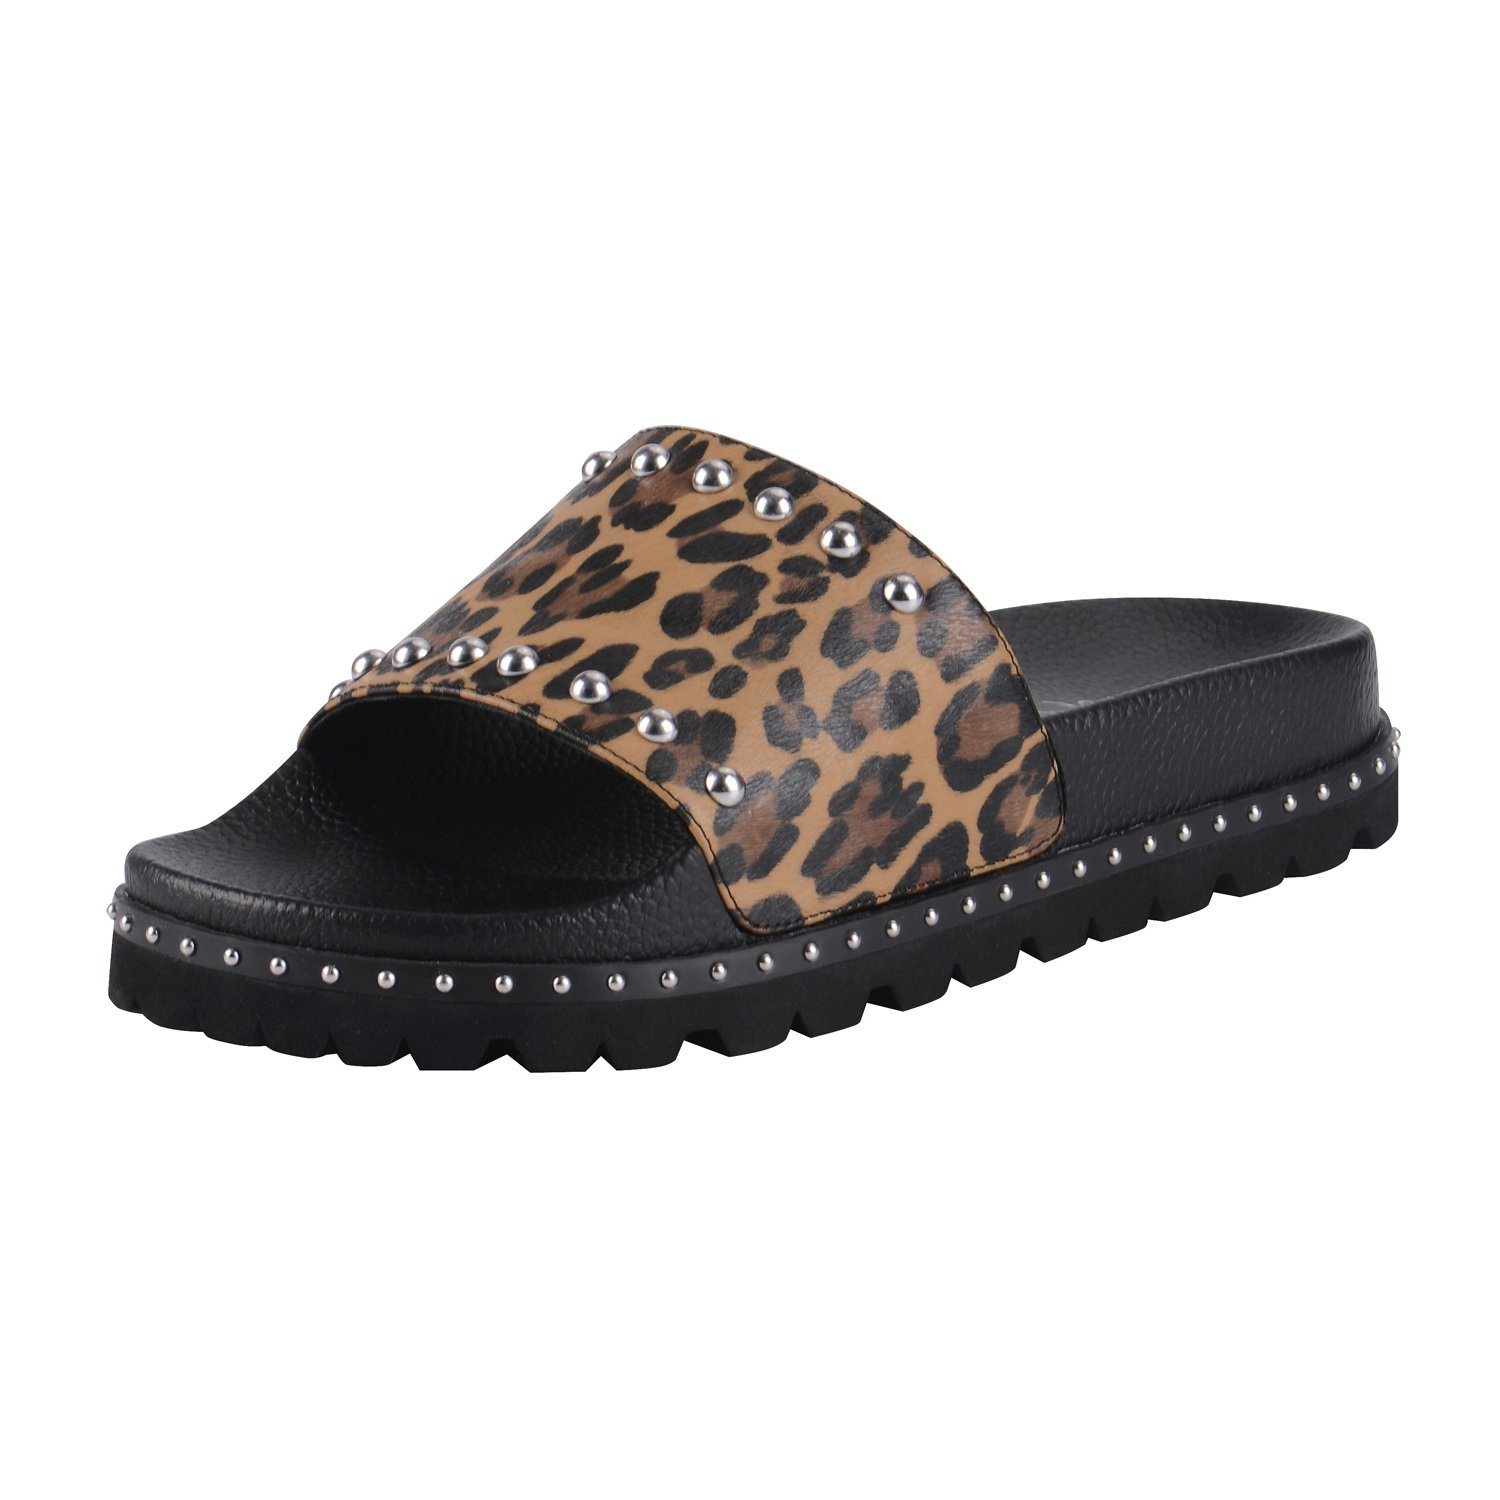 29e88d983f961 ASHOE DESIGN Women's Flat Slide Sandals Comfortable Slip On Footbed Silver  Studs-Leopard Printed